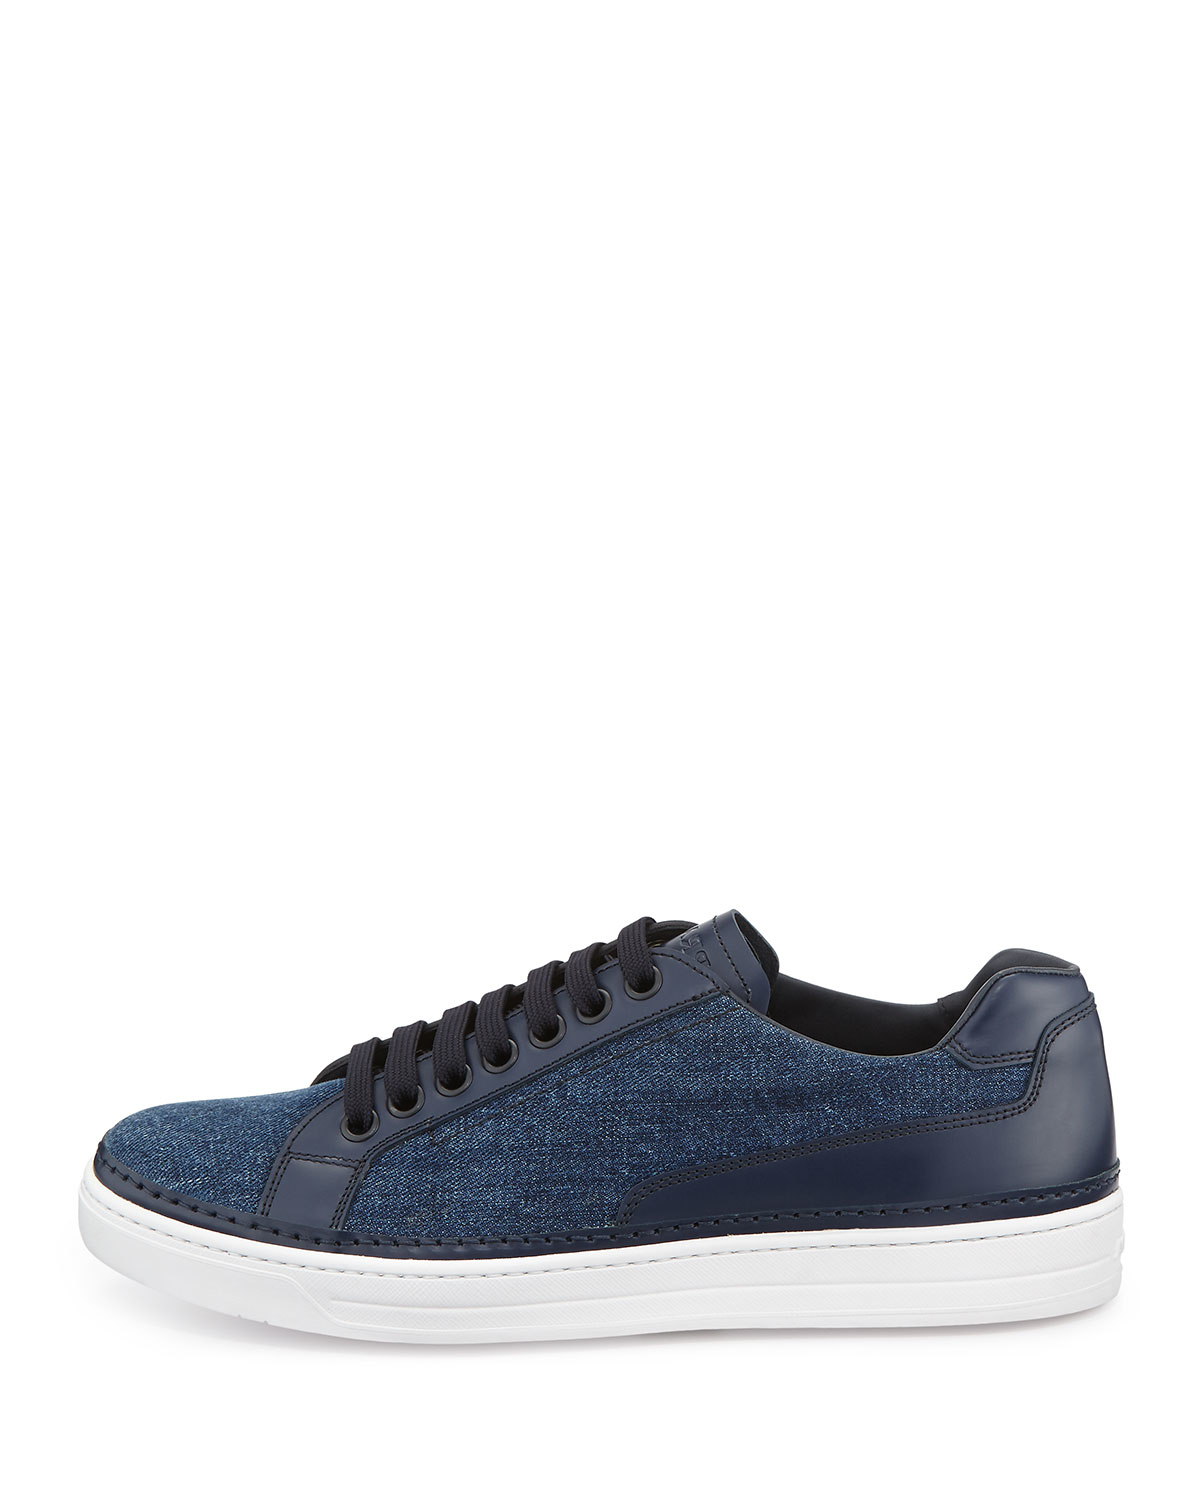 low top sneakers - Blue Prada VP34Faj1KR